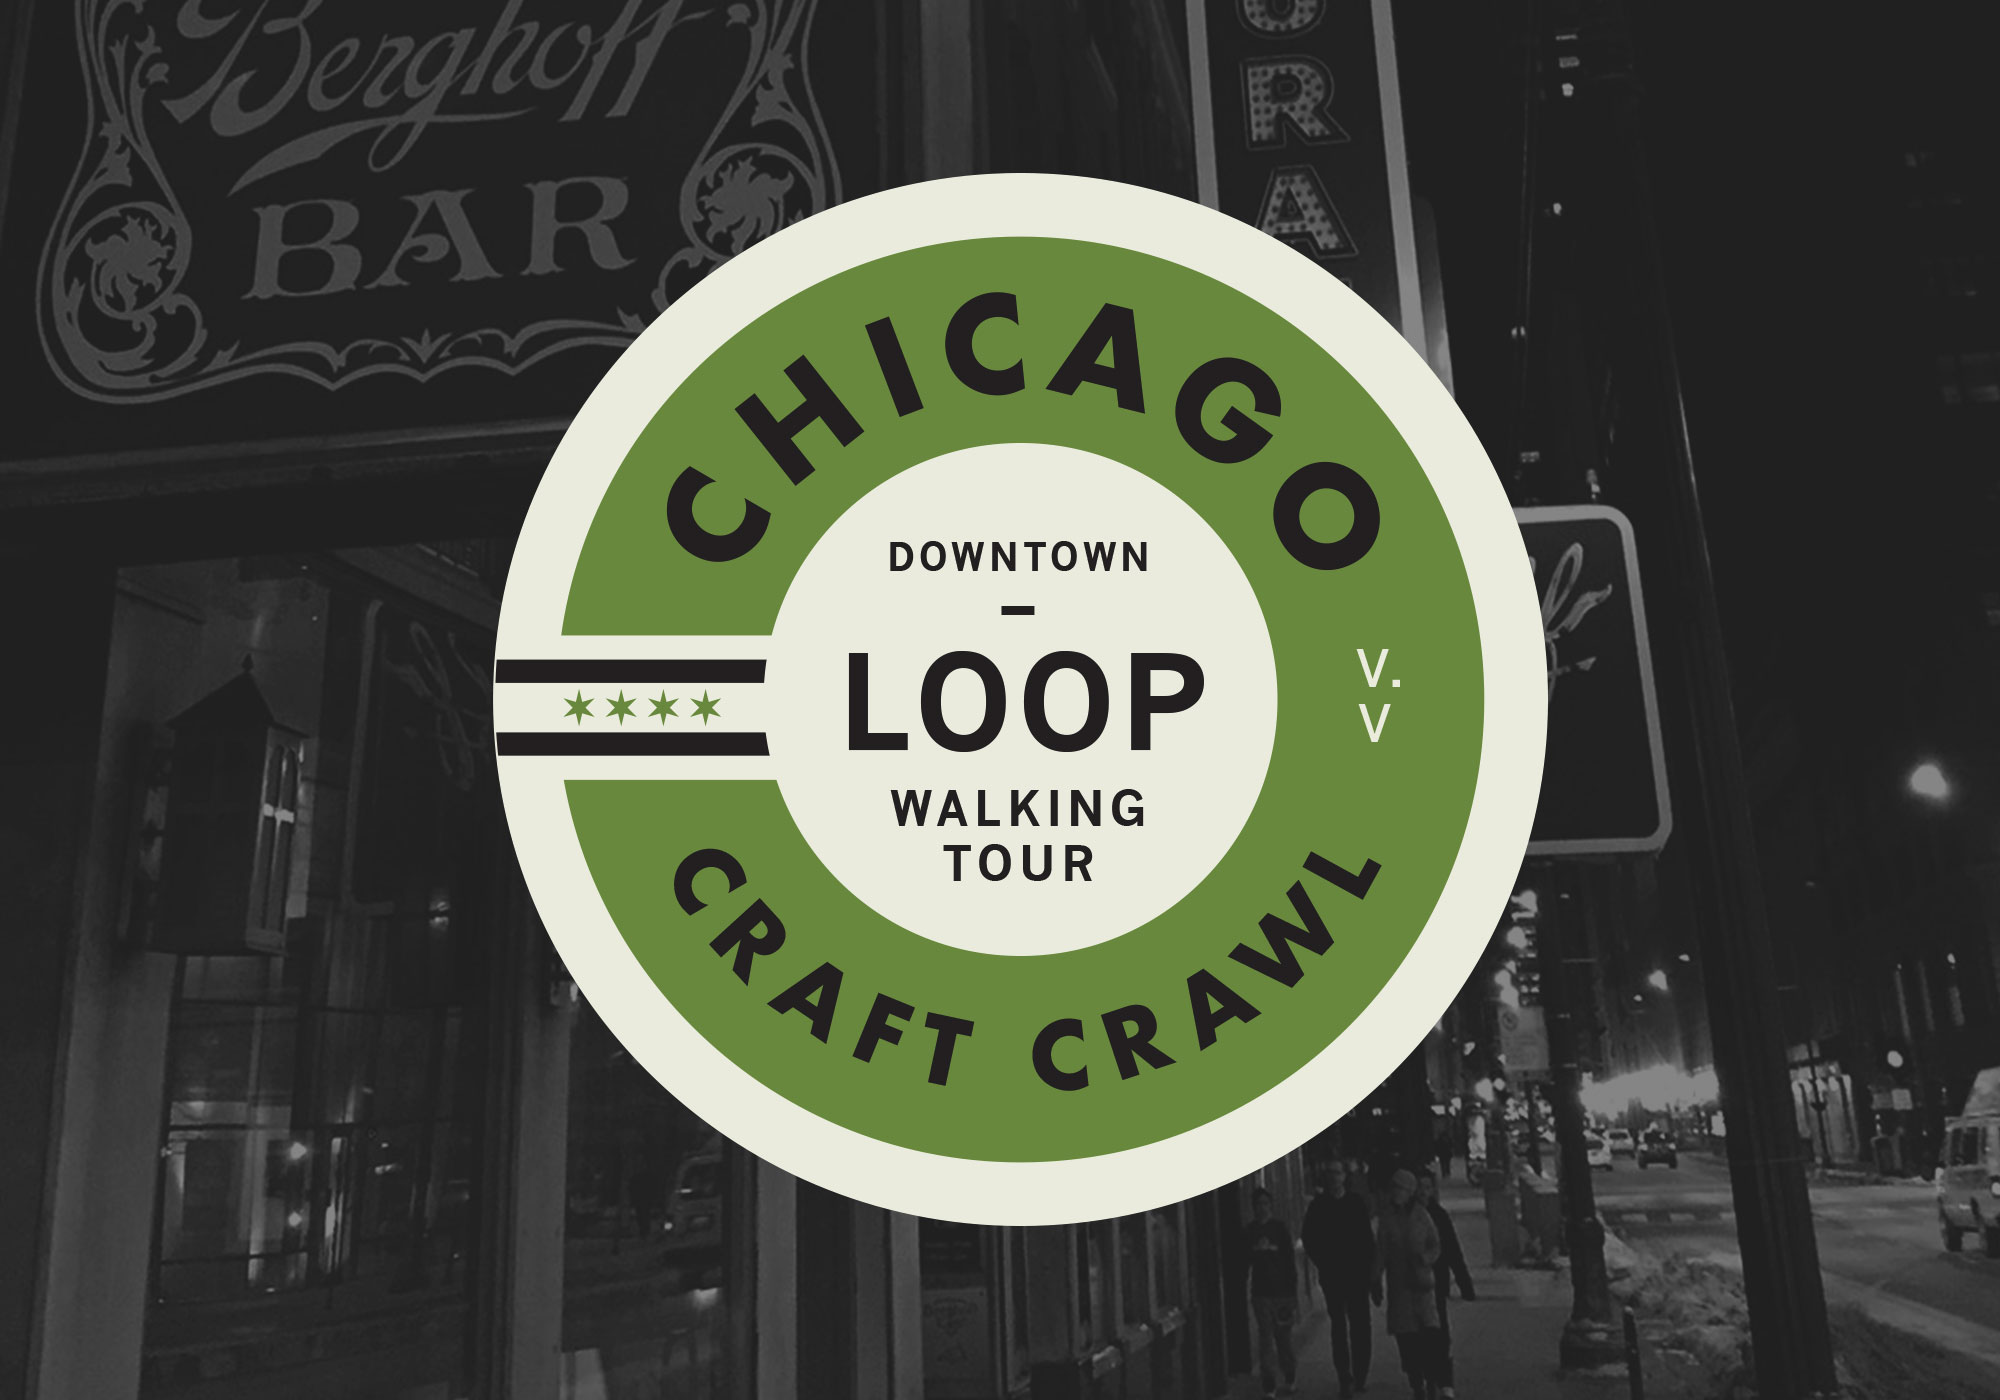 TheHopReview_ChicagoCraftCrawl_5_Loop.jpg